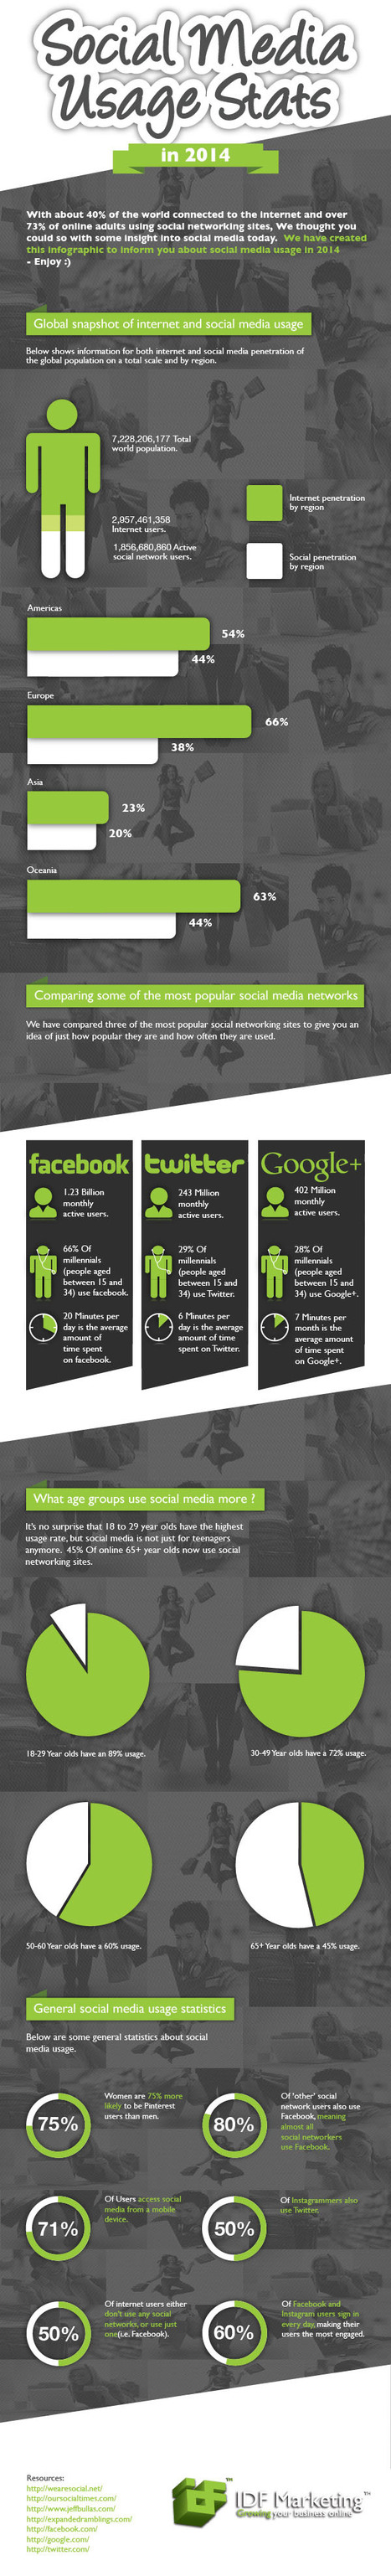 Social Media Usage Stats in 2014 [Infographic] | Effective Website Marketing | Scoop.it